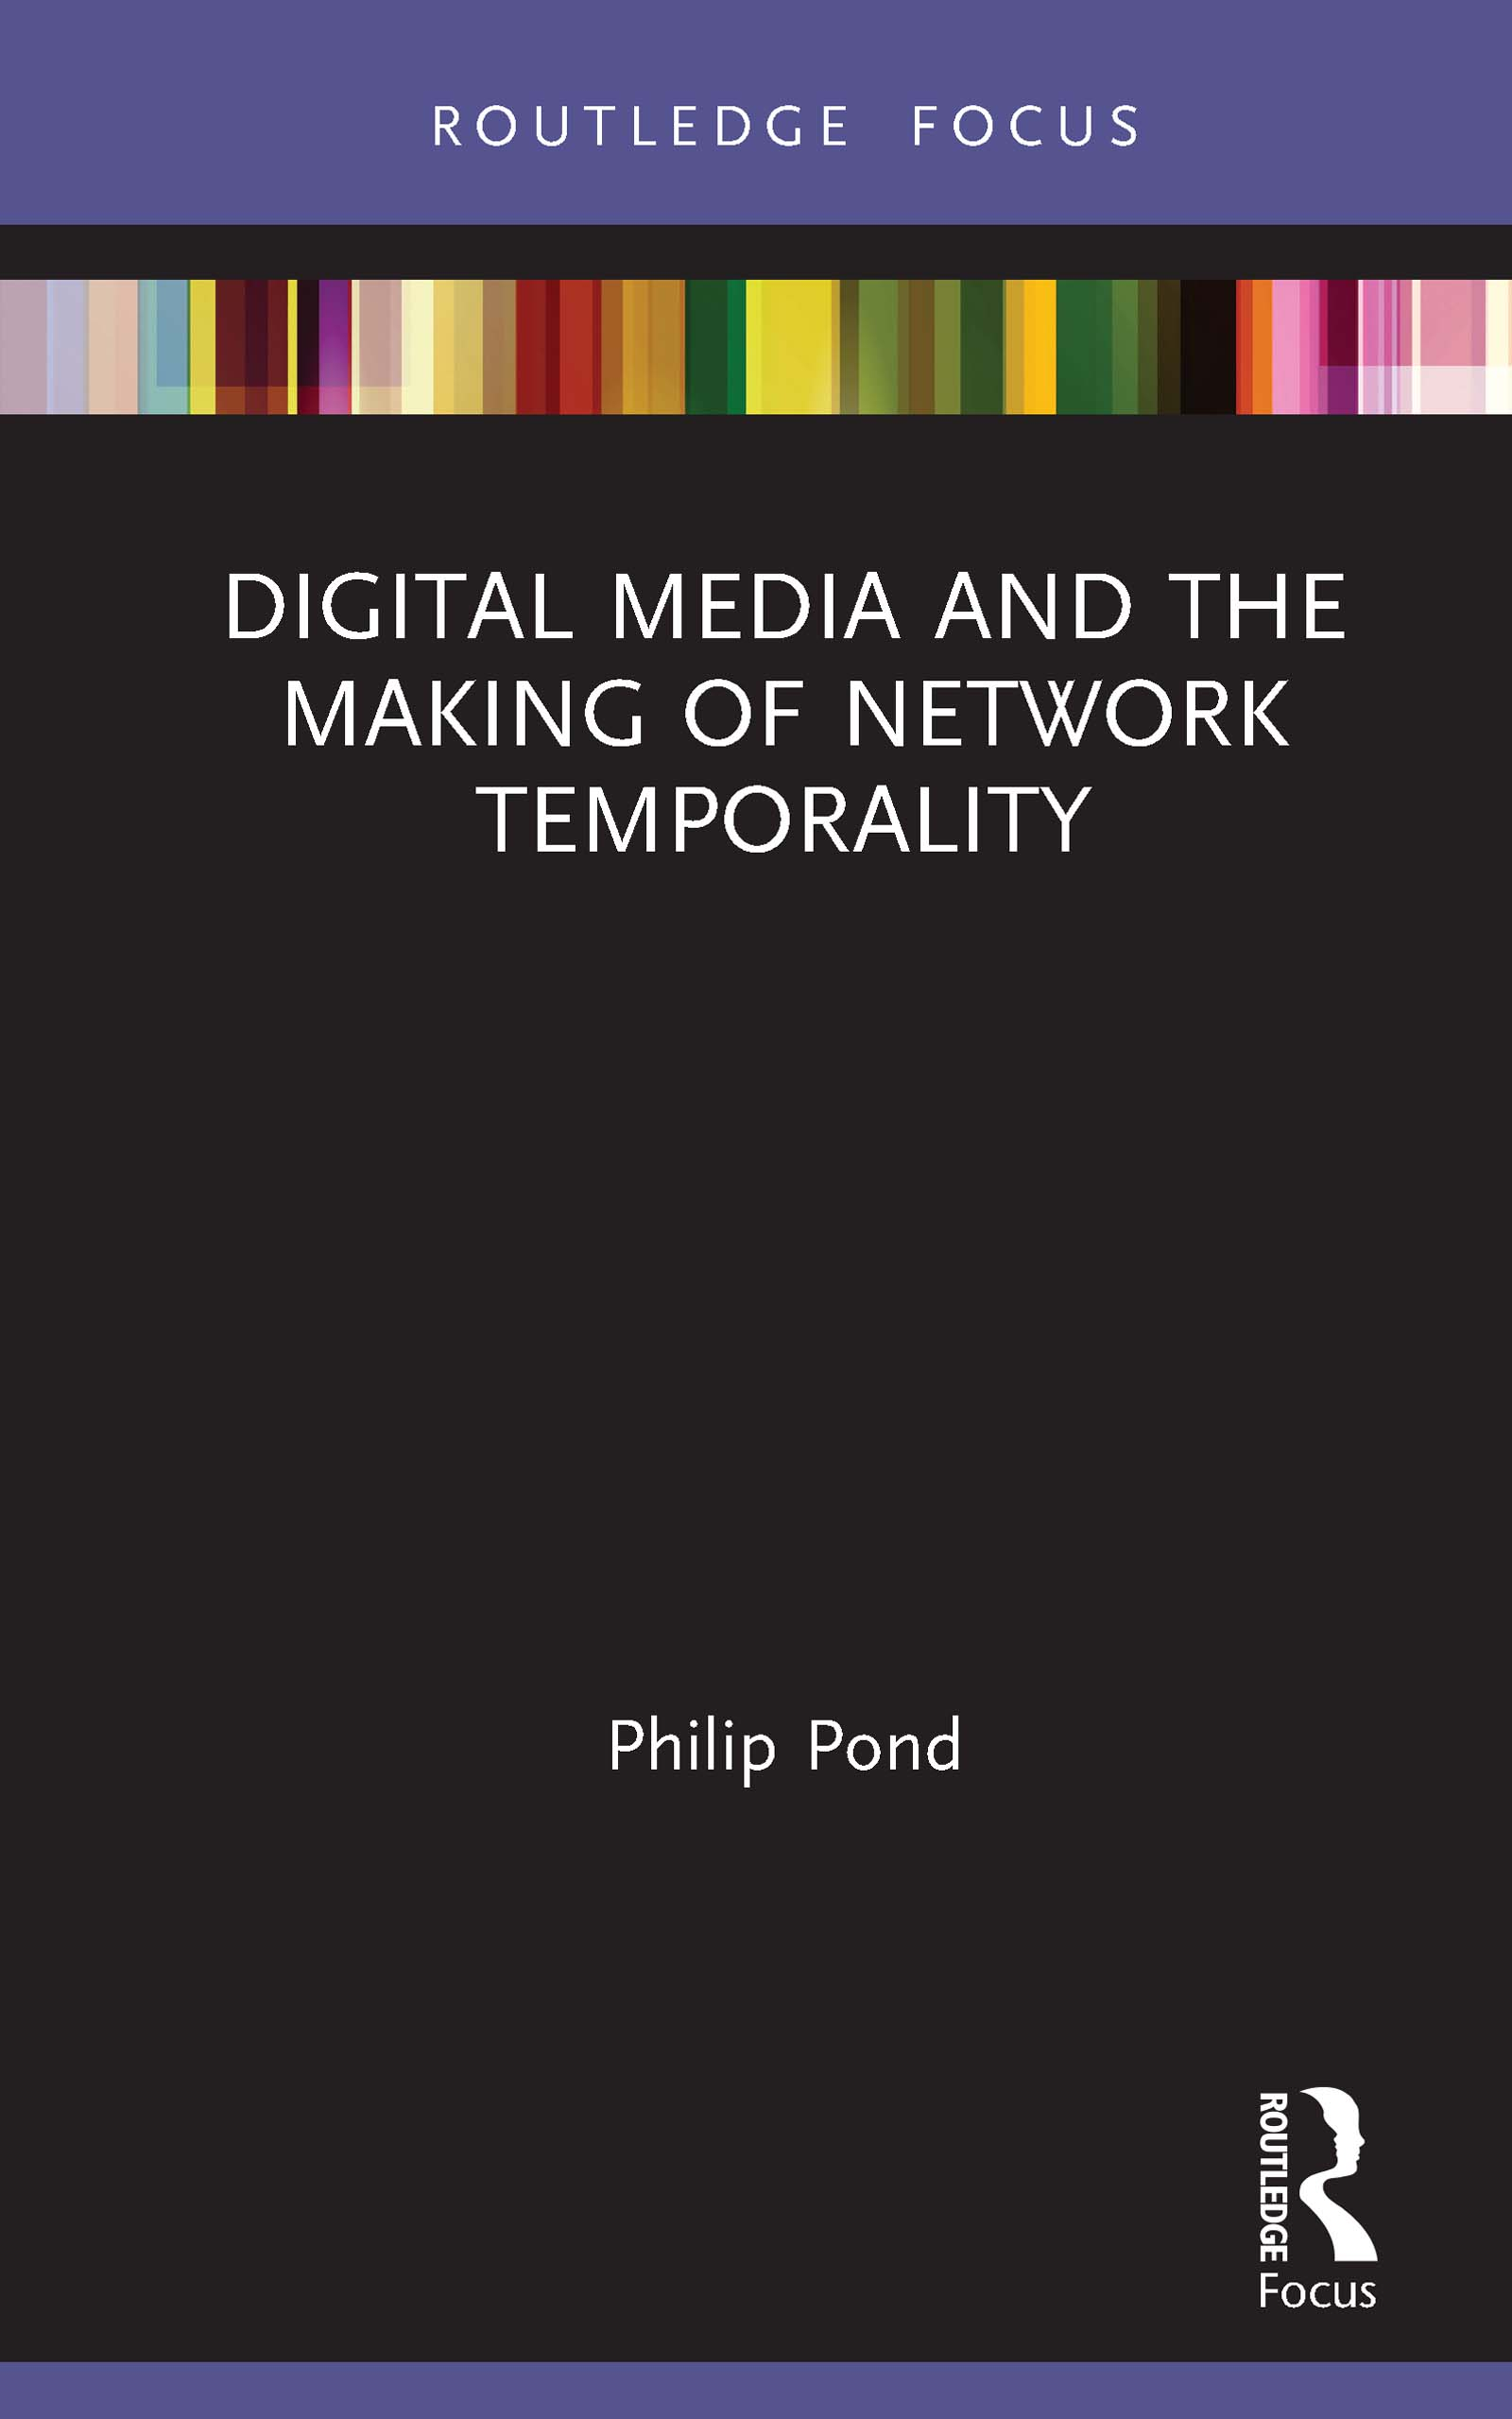 Digital Media and the Making of Network Temporality